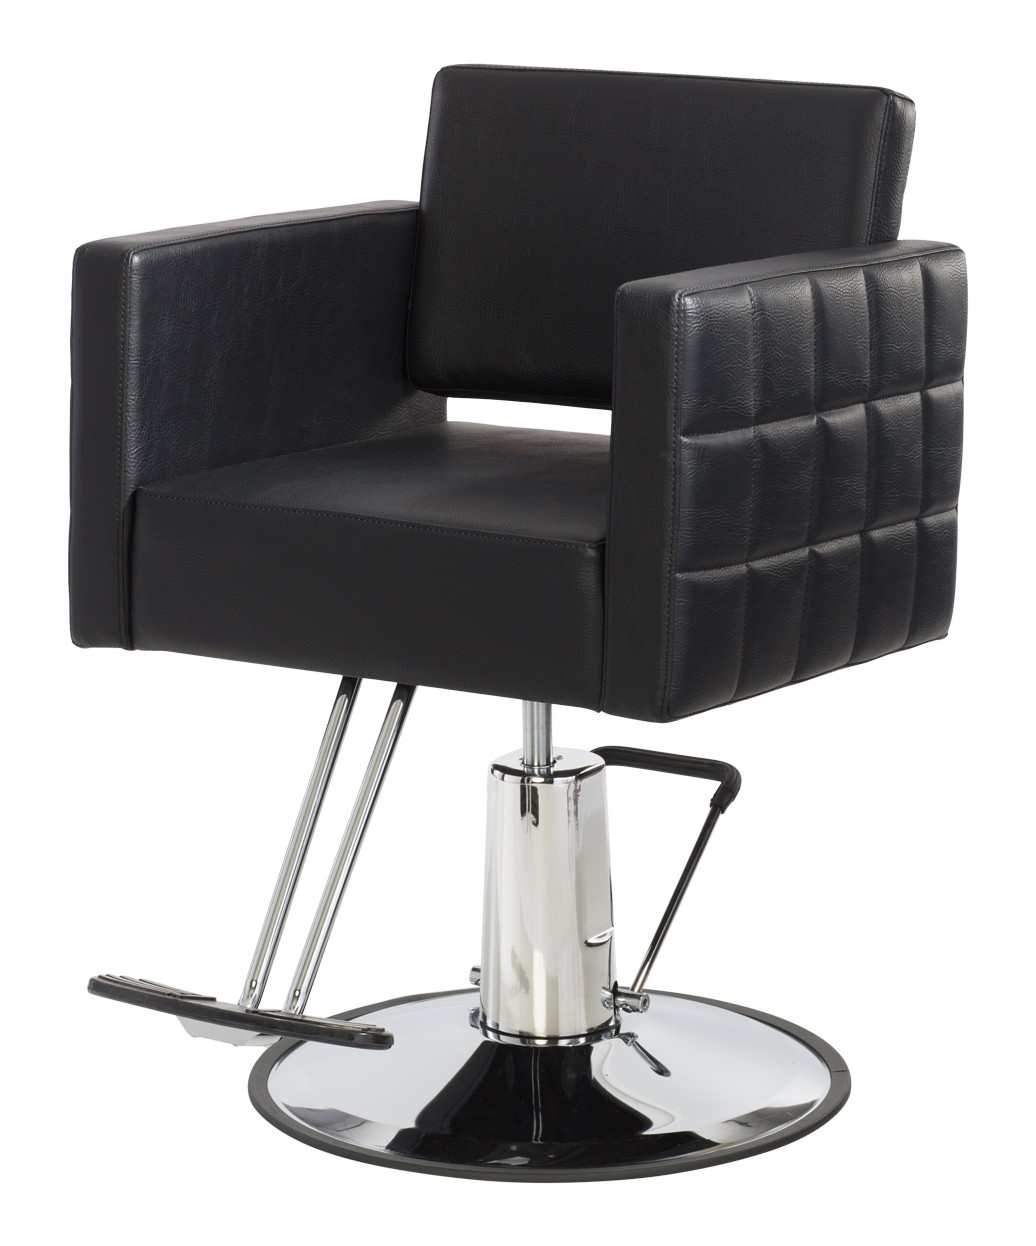 Black salon chairs - Icon Styling Chair